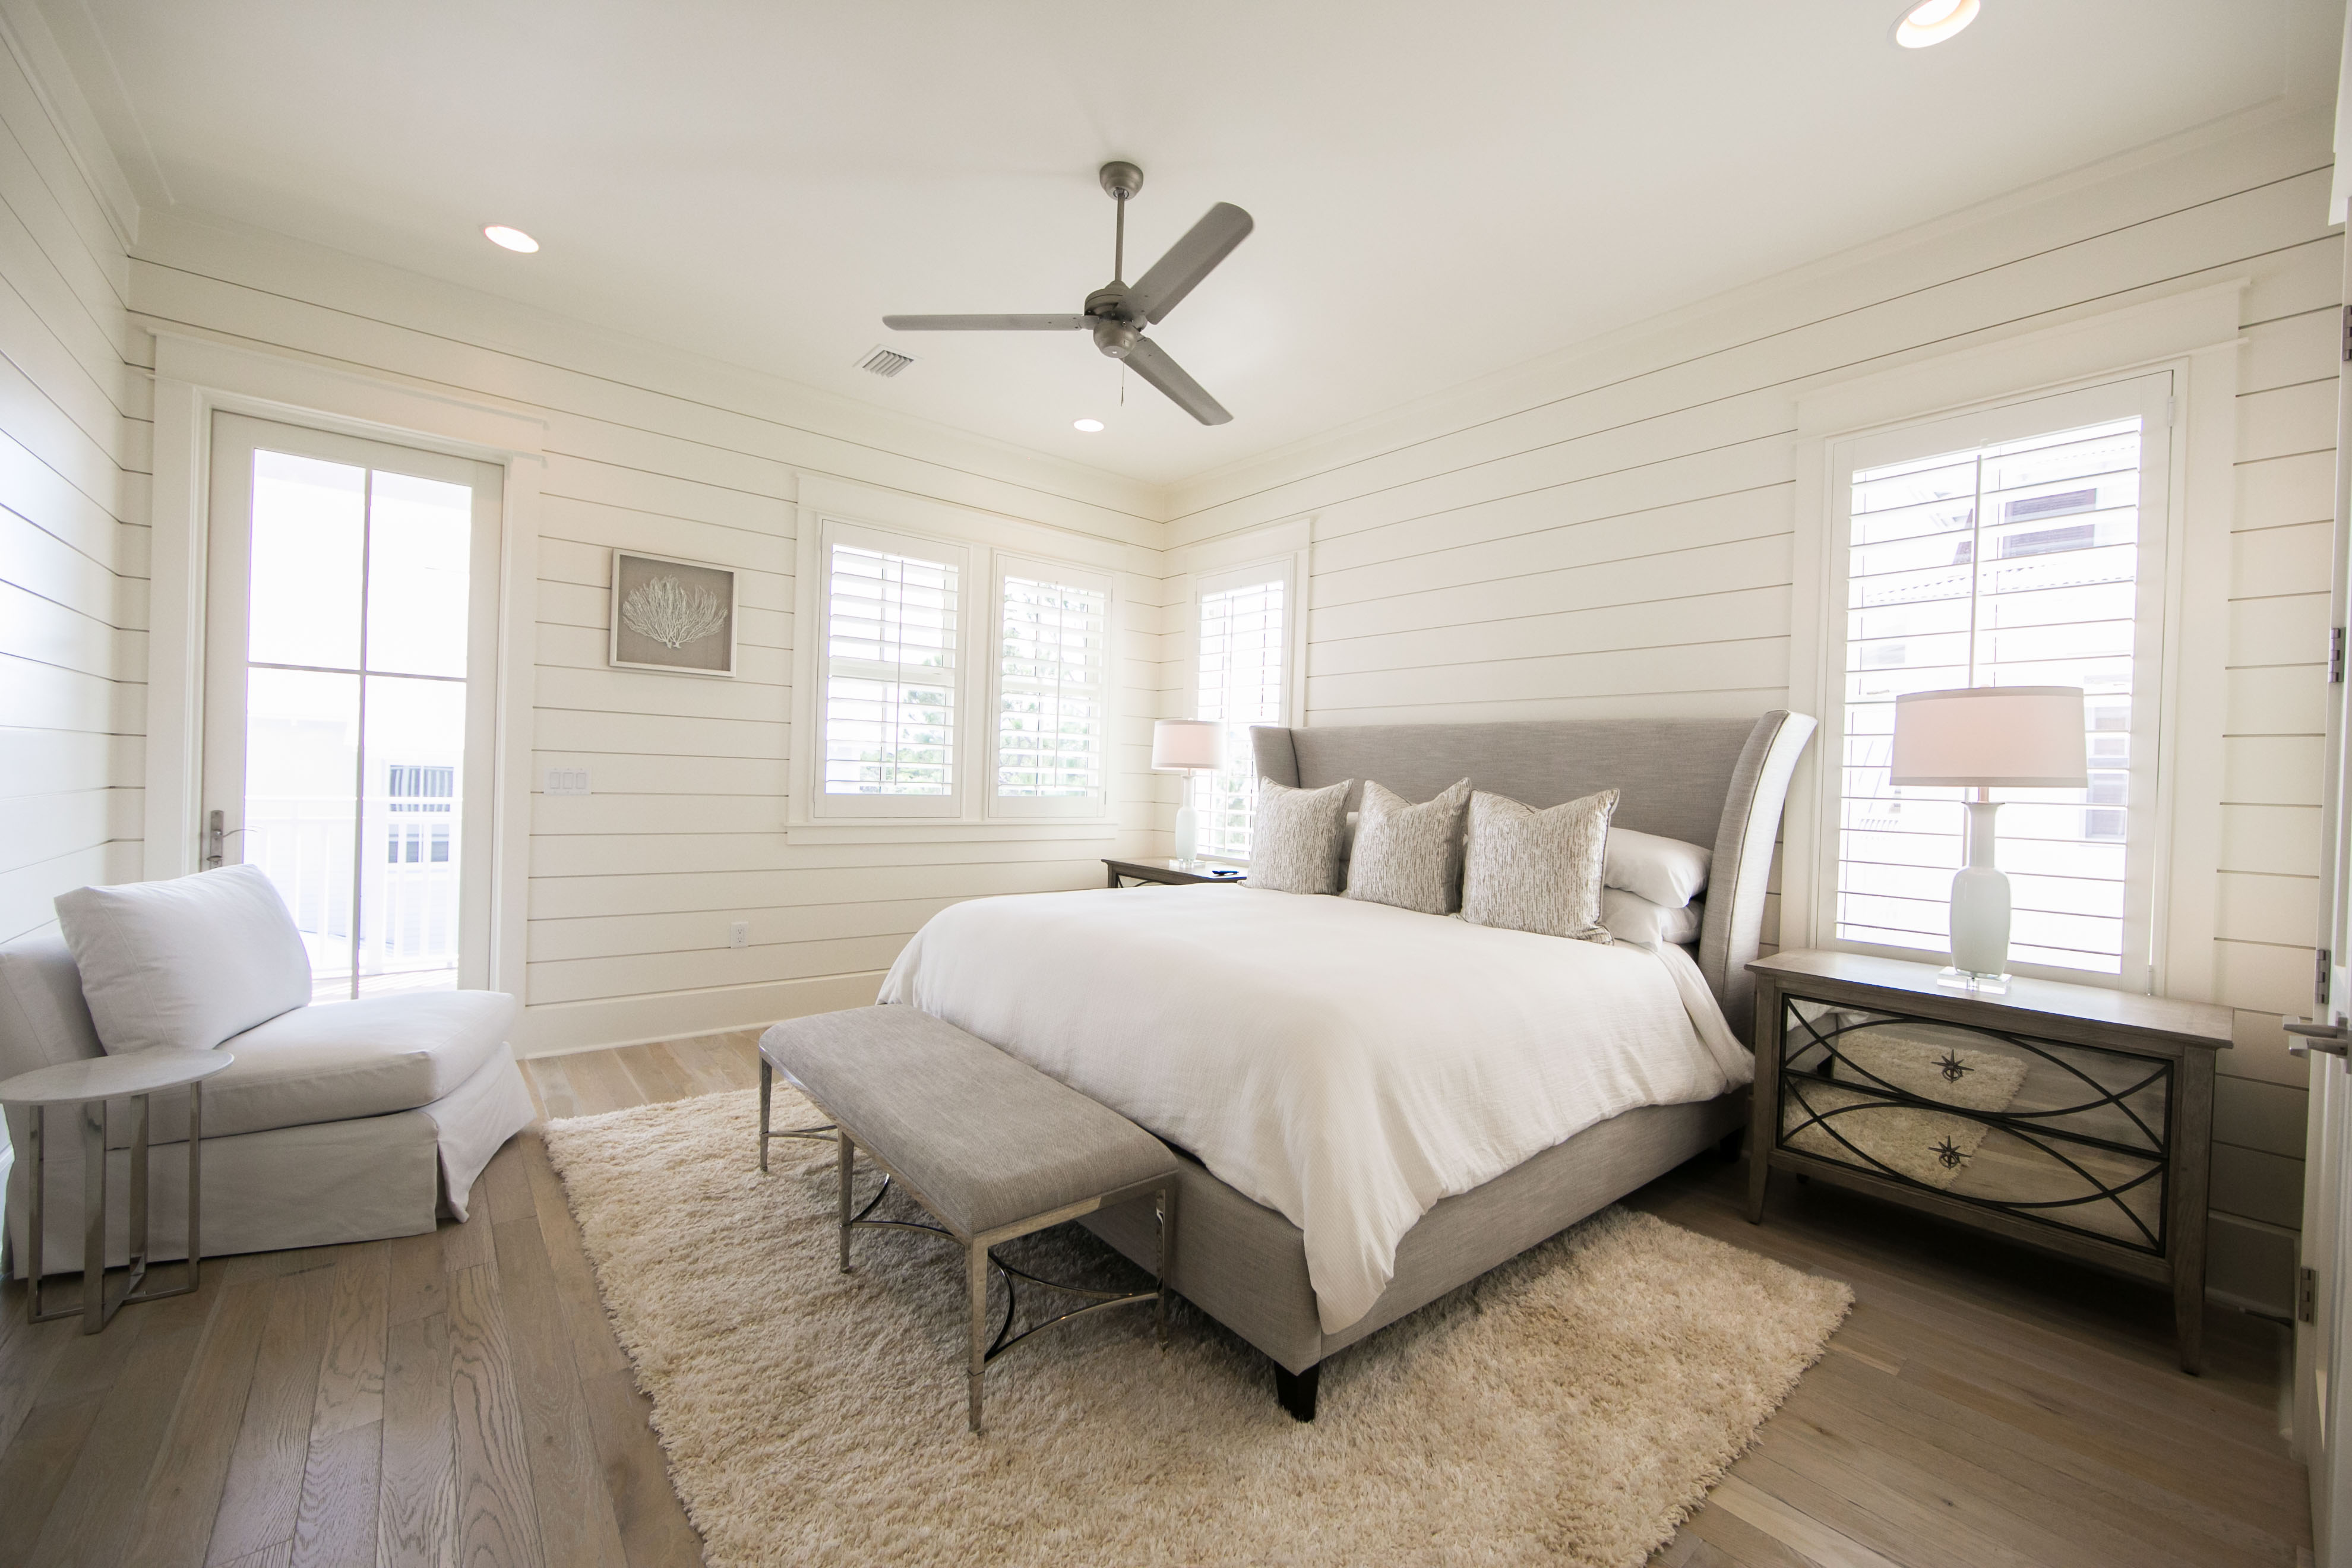 Main King Master Suite with Private Balcony overlooking the Pool Deck